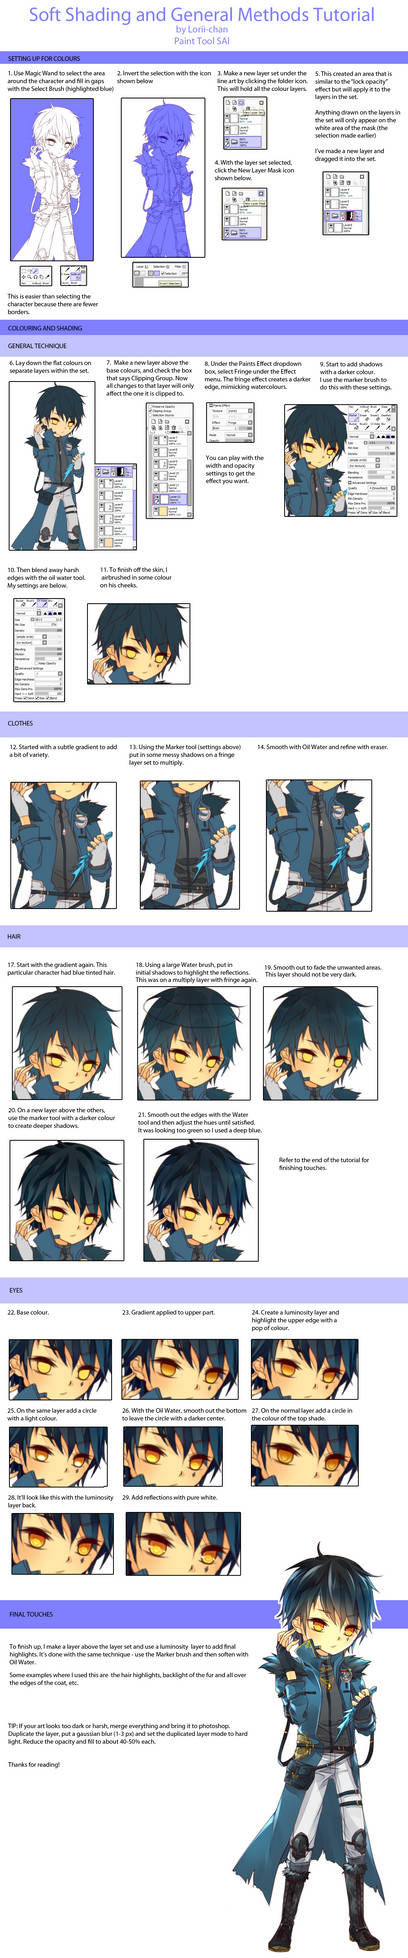 Soft Shading Tutorial via Paint Tool SAI